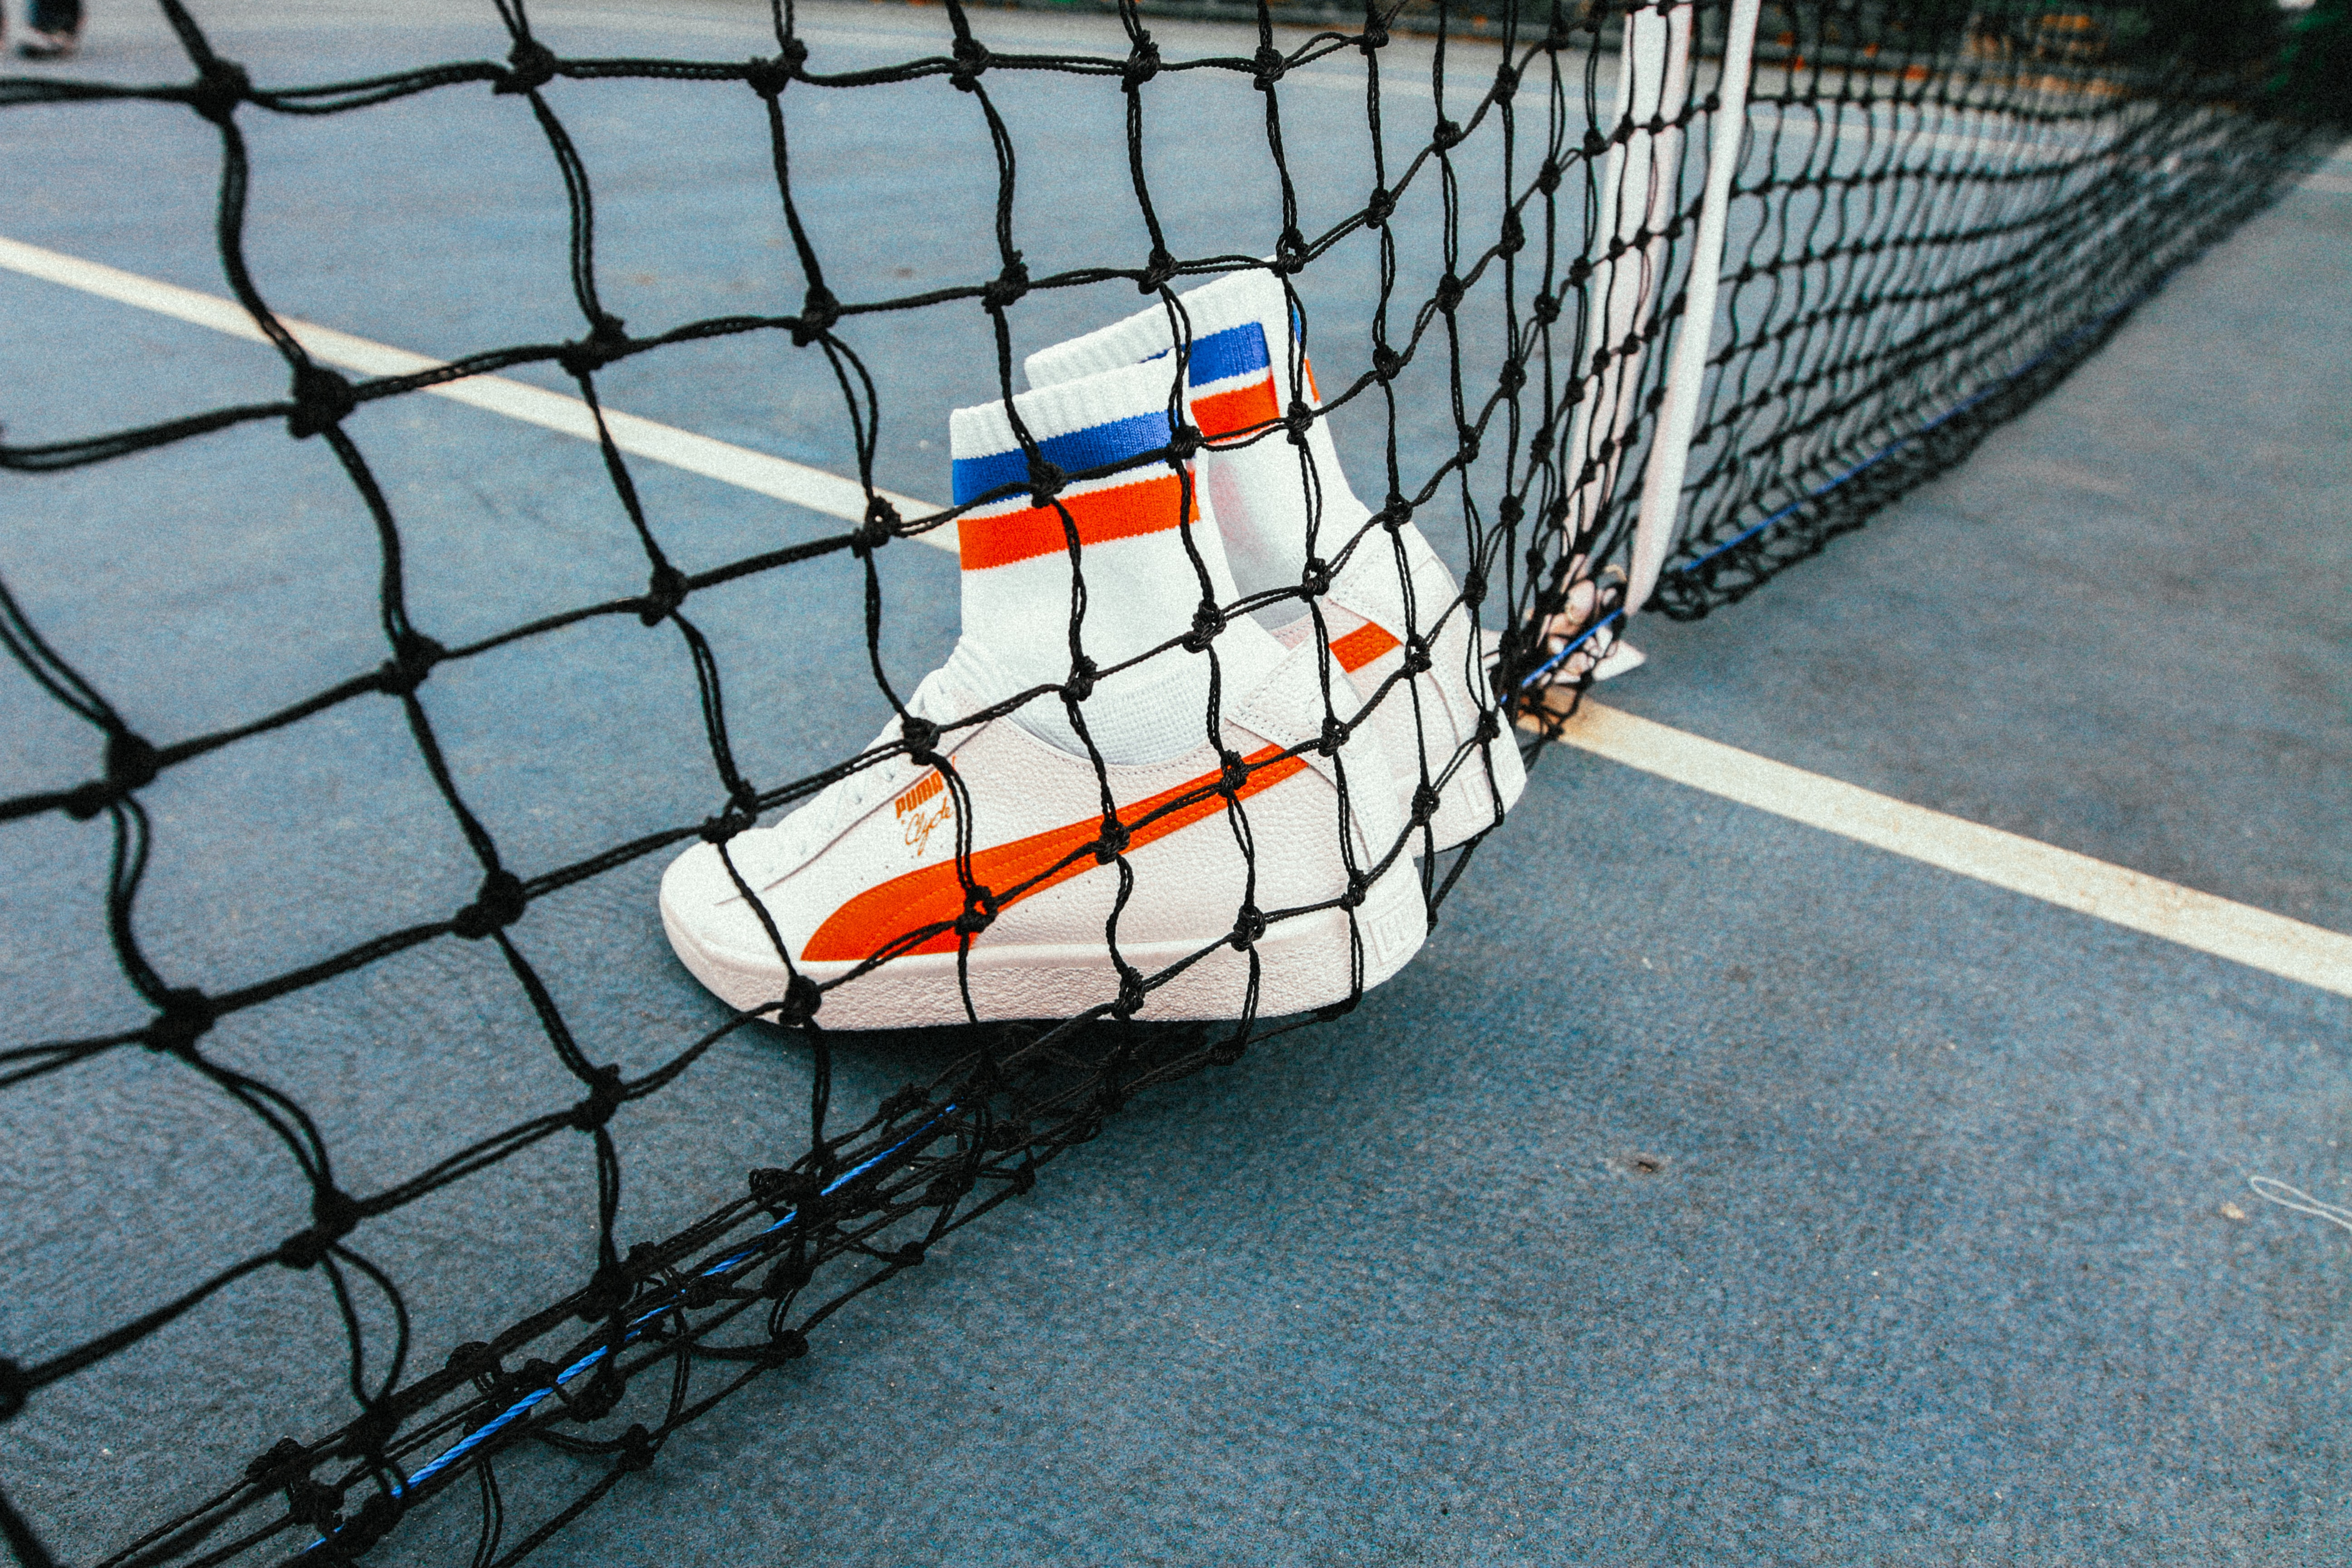 white-and-red Puma Sock shoes on tennis net